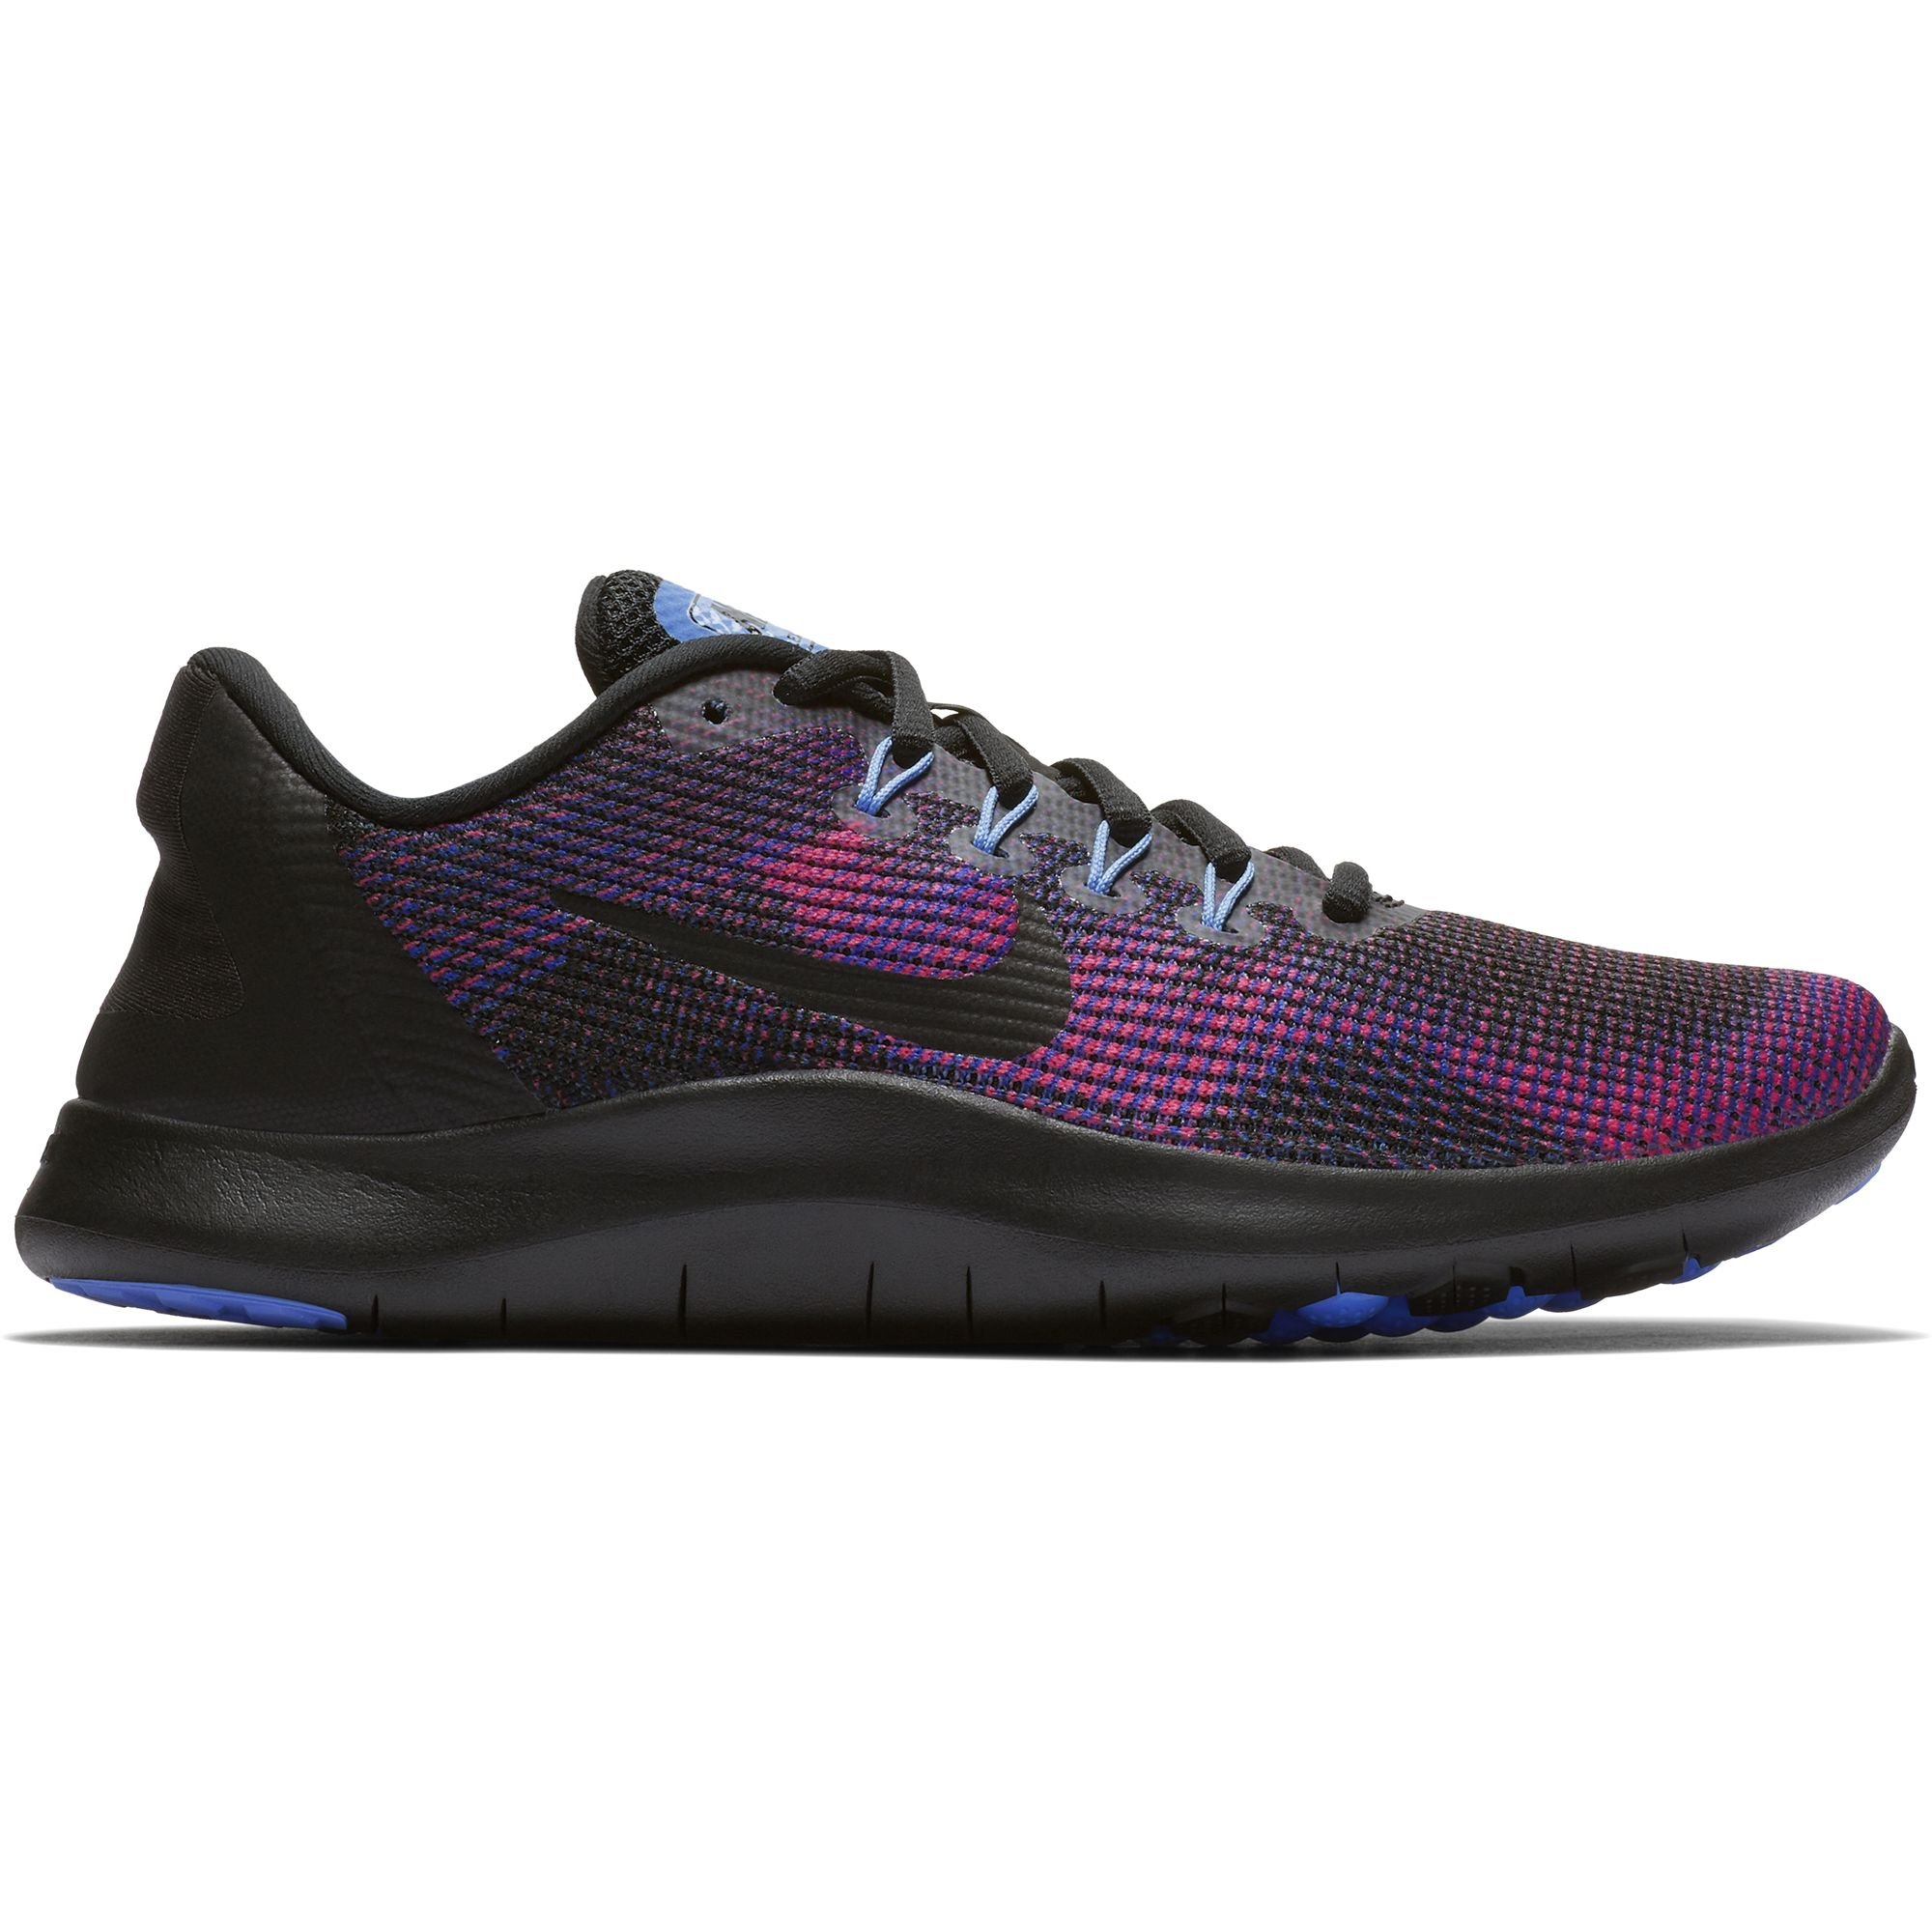 ba0b3698b66ea Galleon - NIKE Women s Flex RN 2018 Running Shoe Black Royal Pulse Deep  Royal Blue Size 6 M US